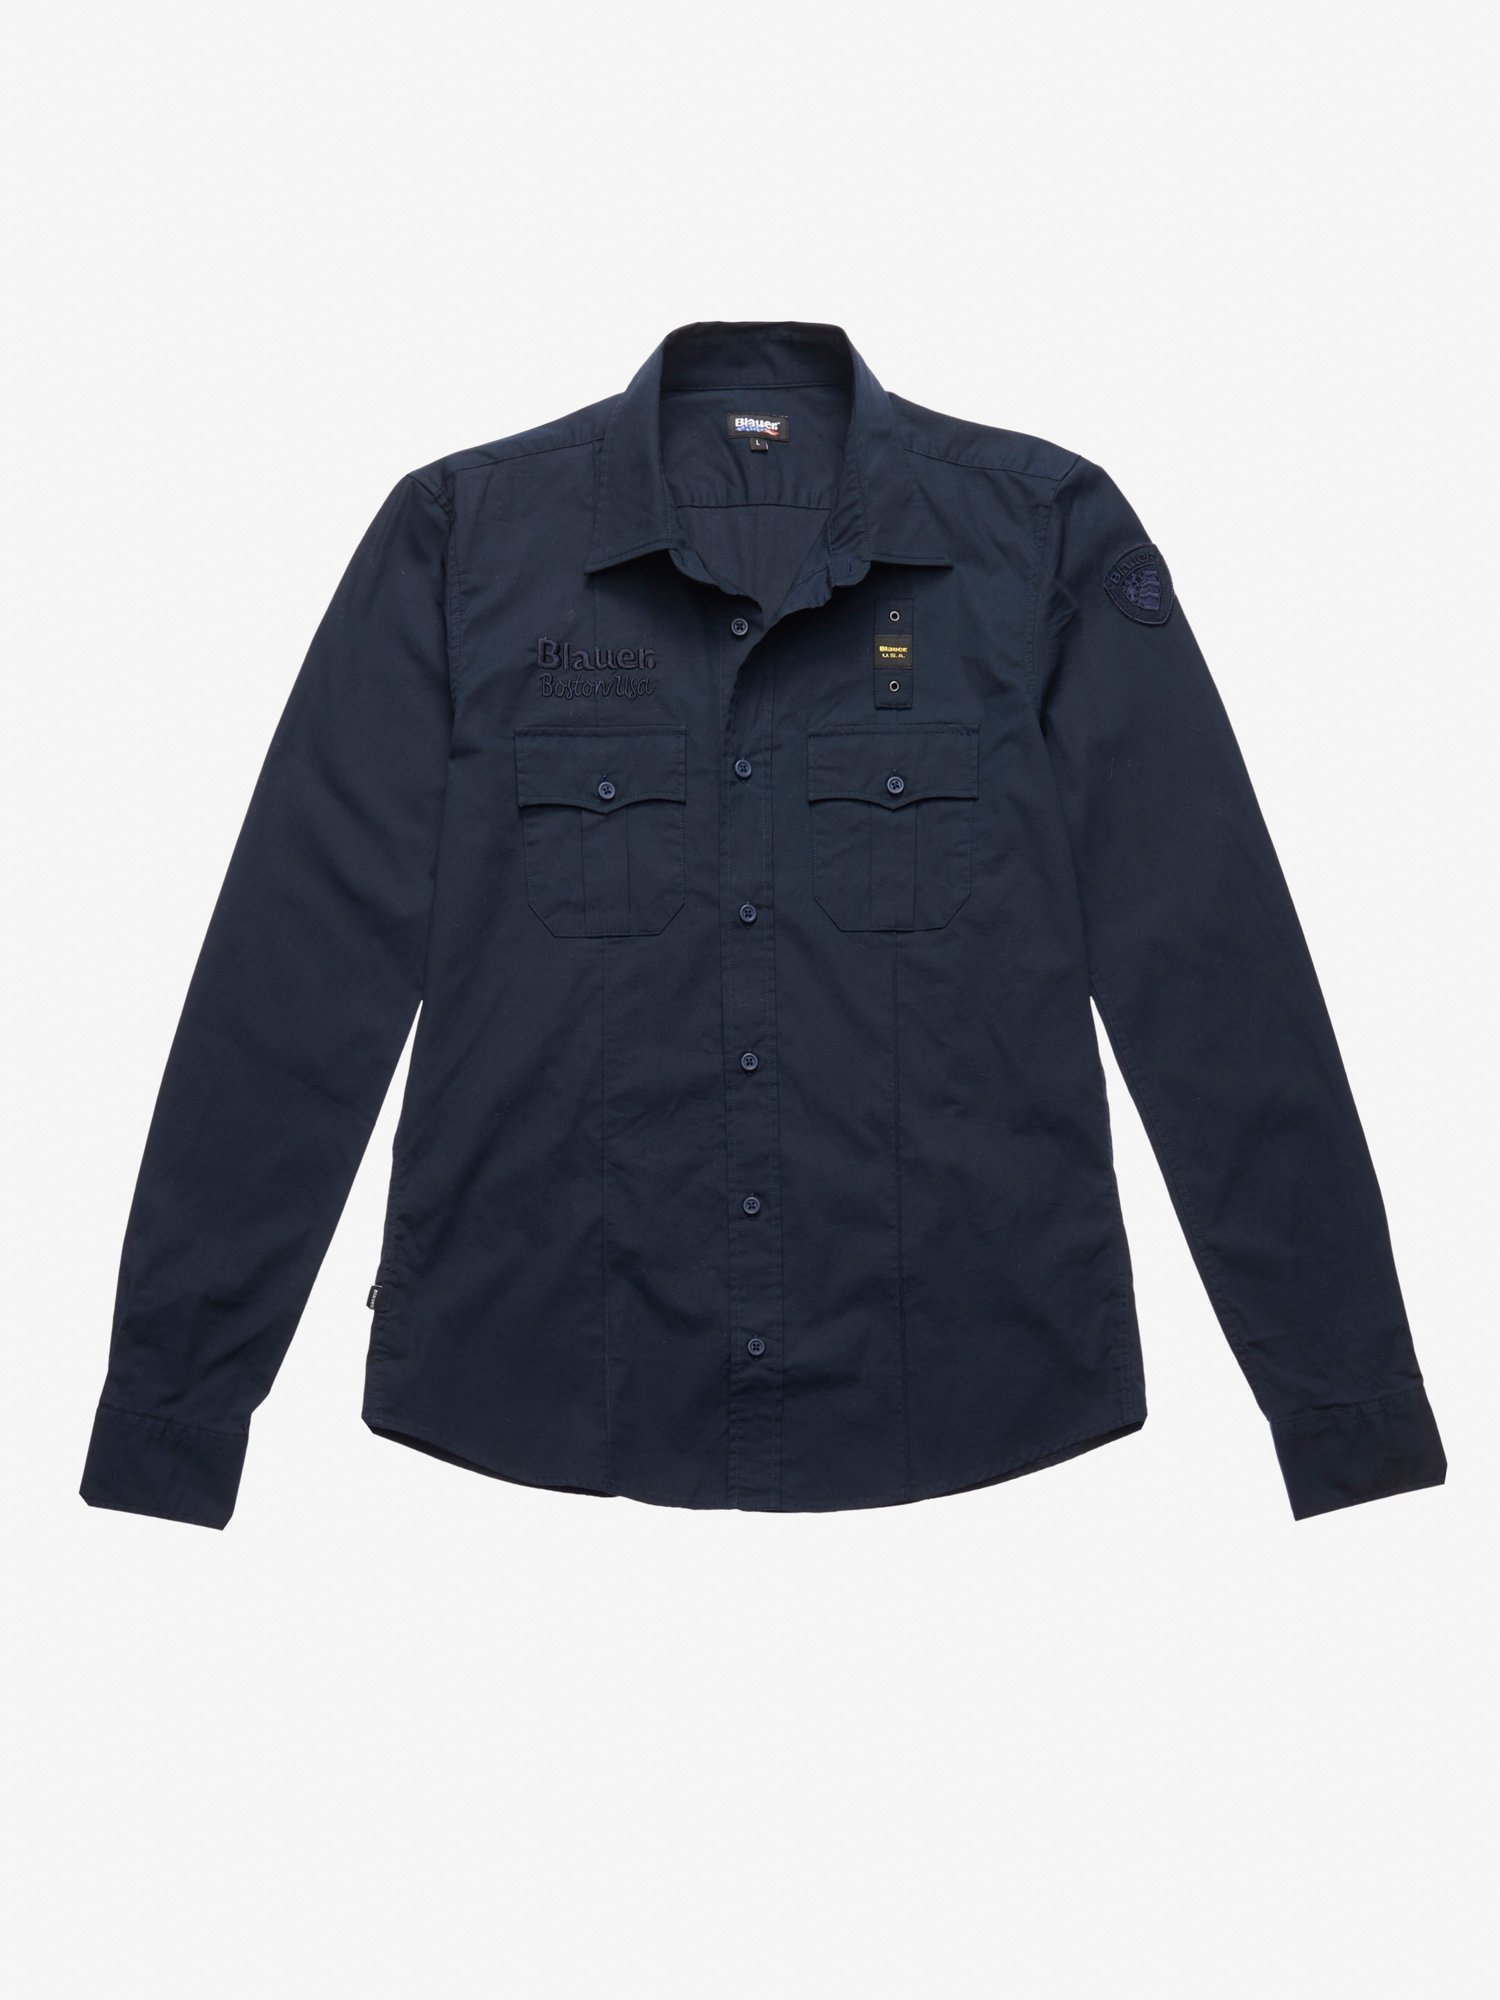 STRETCH POPLIN SHIRT - Blauer